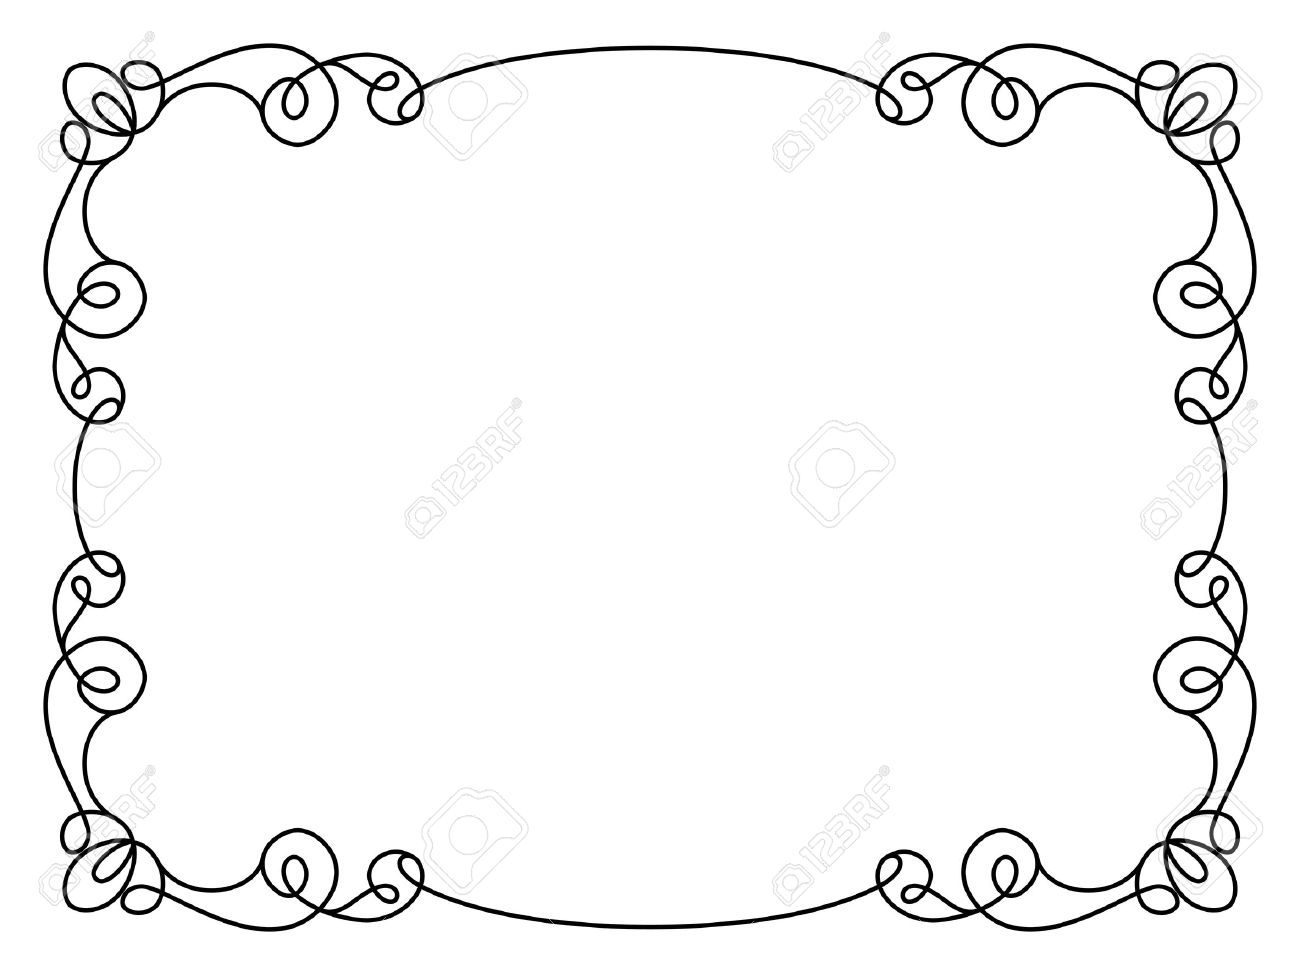 Simple Frame Design Calligraphic Rectangle Ornament Decorative Element In